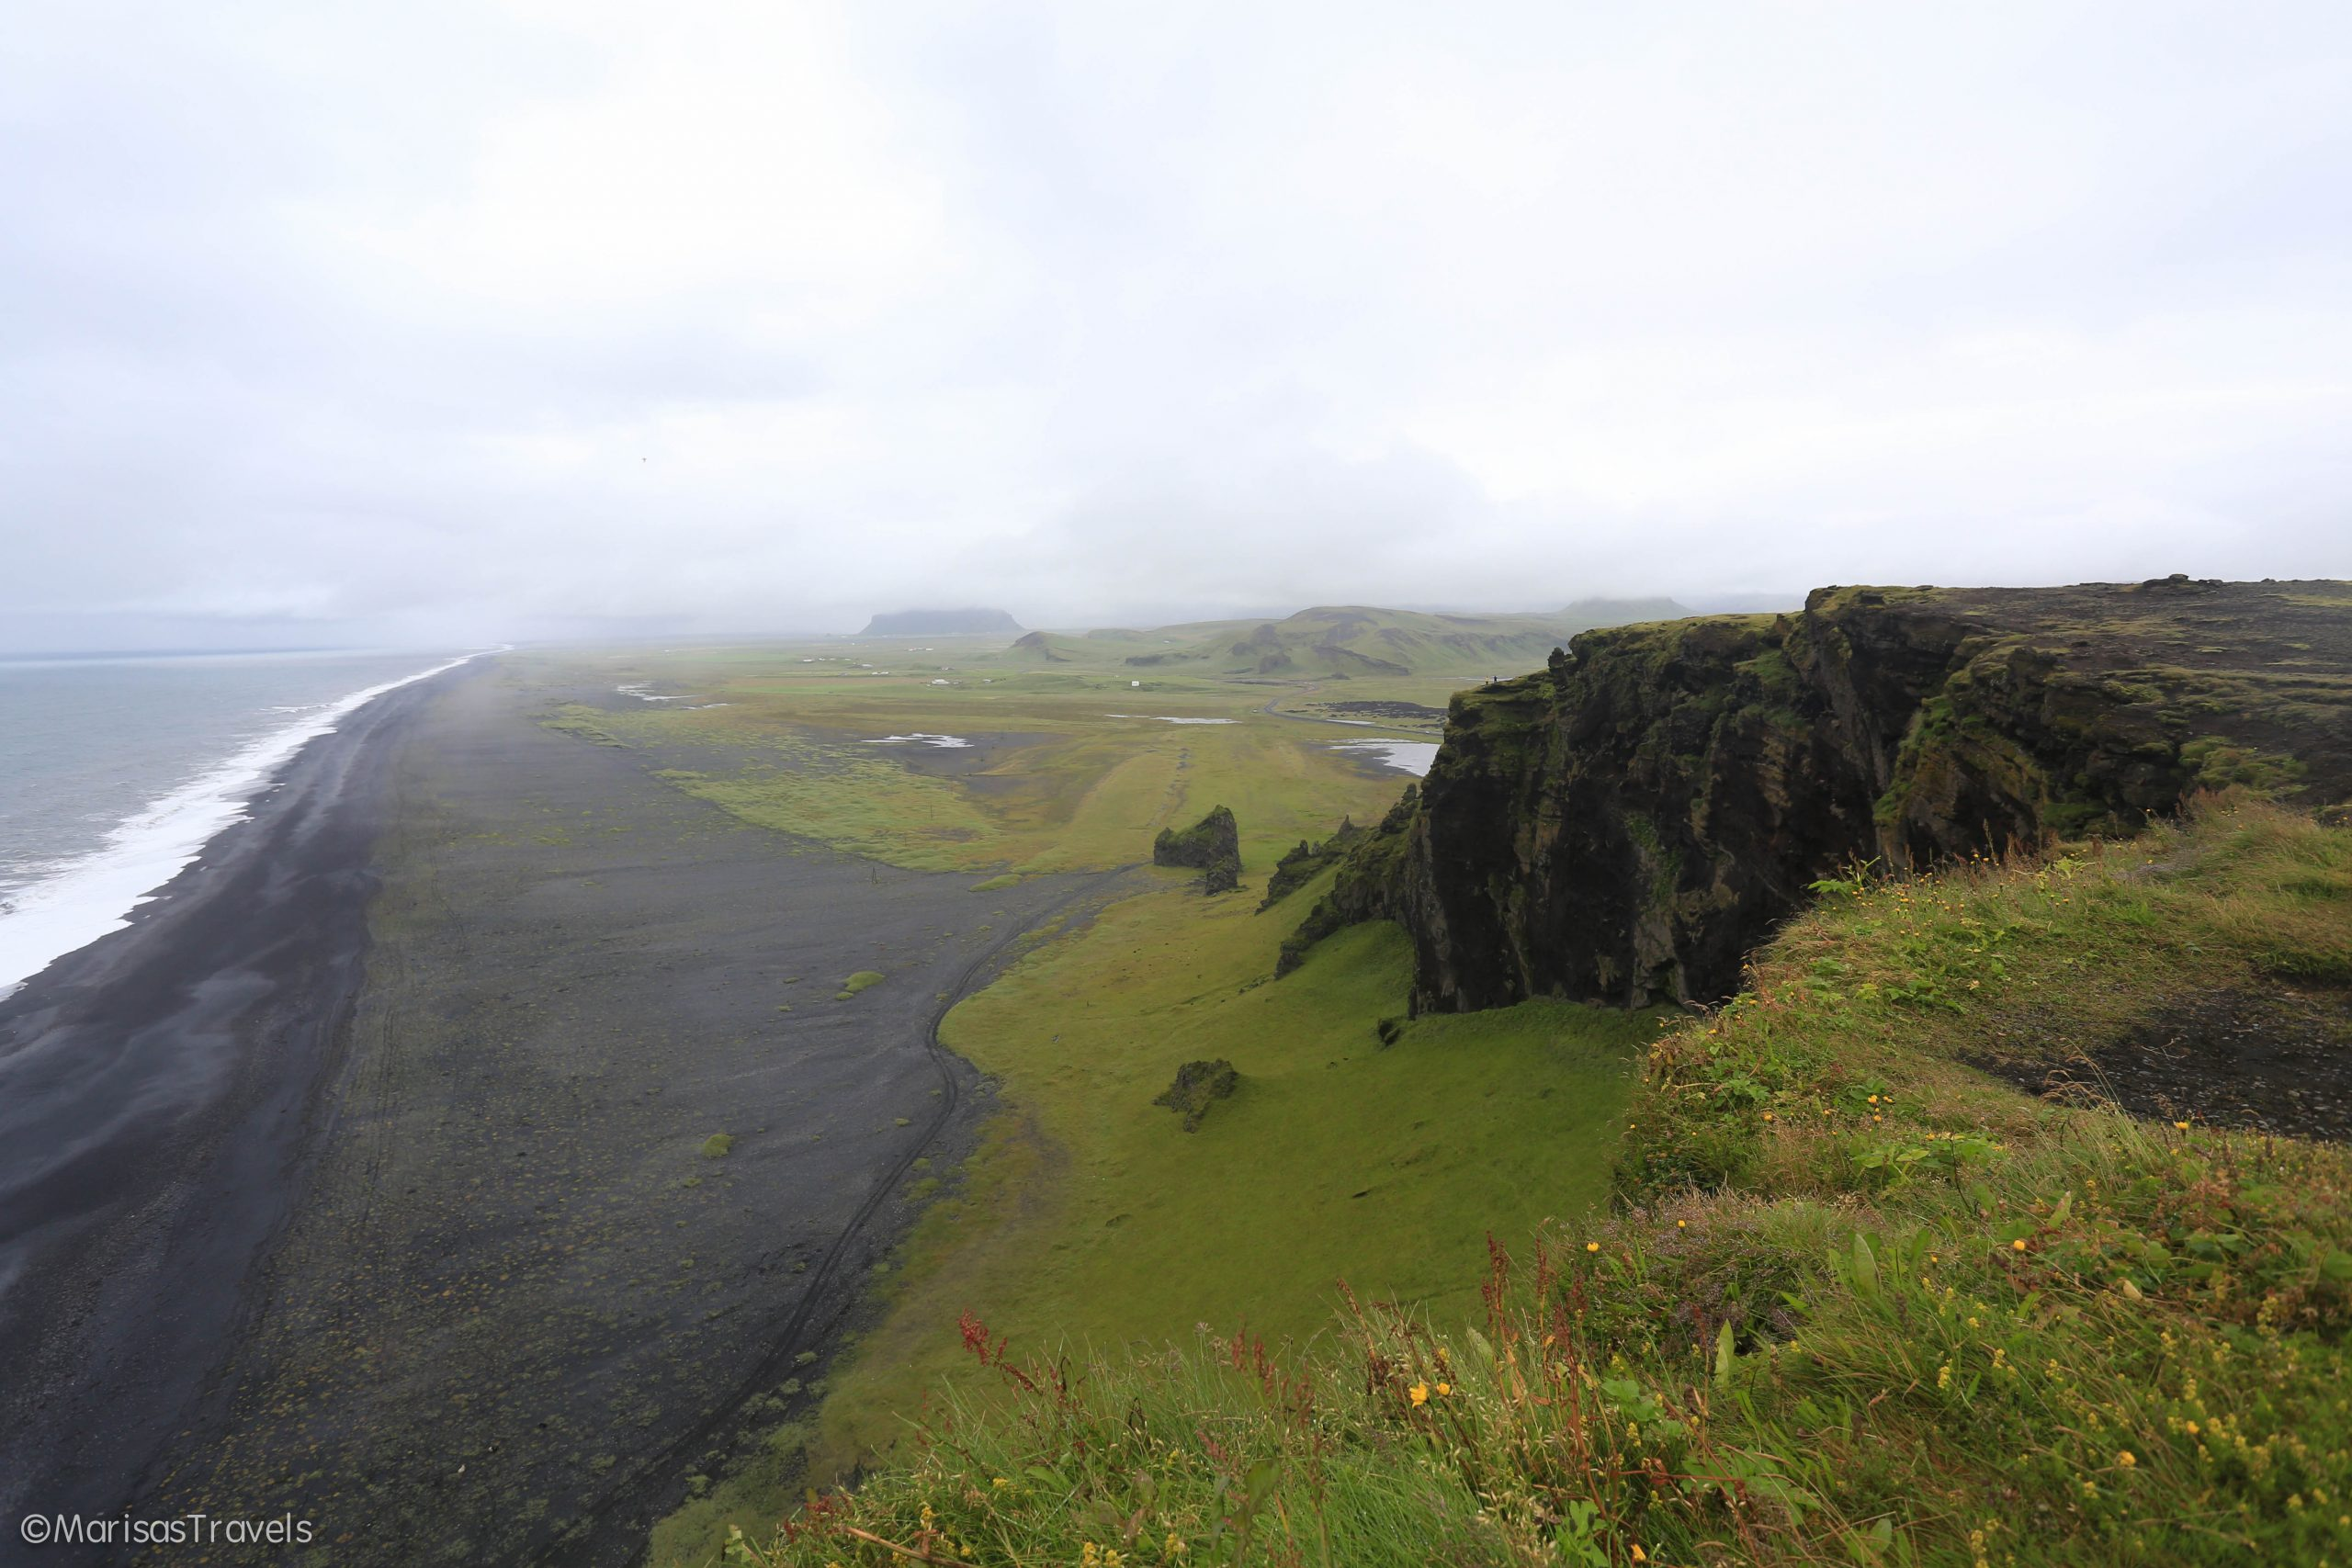 Views from Iceland's south coast